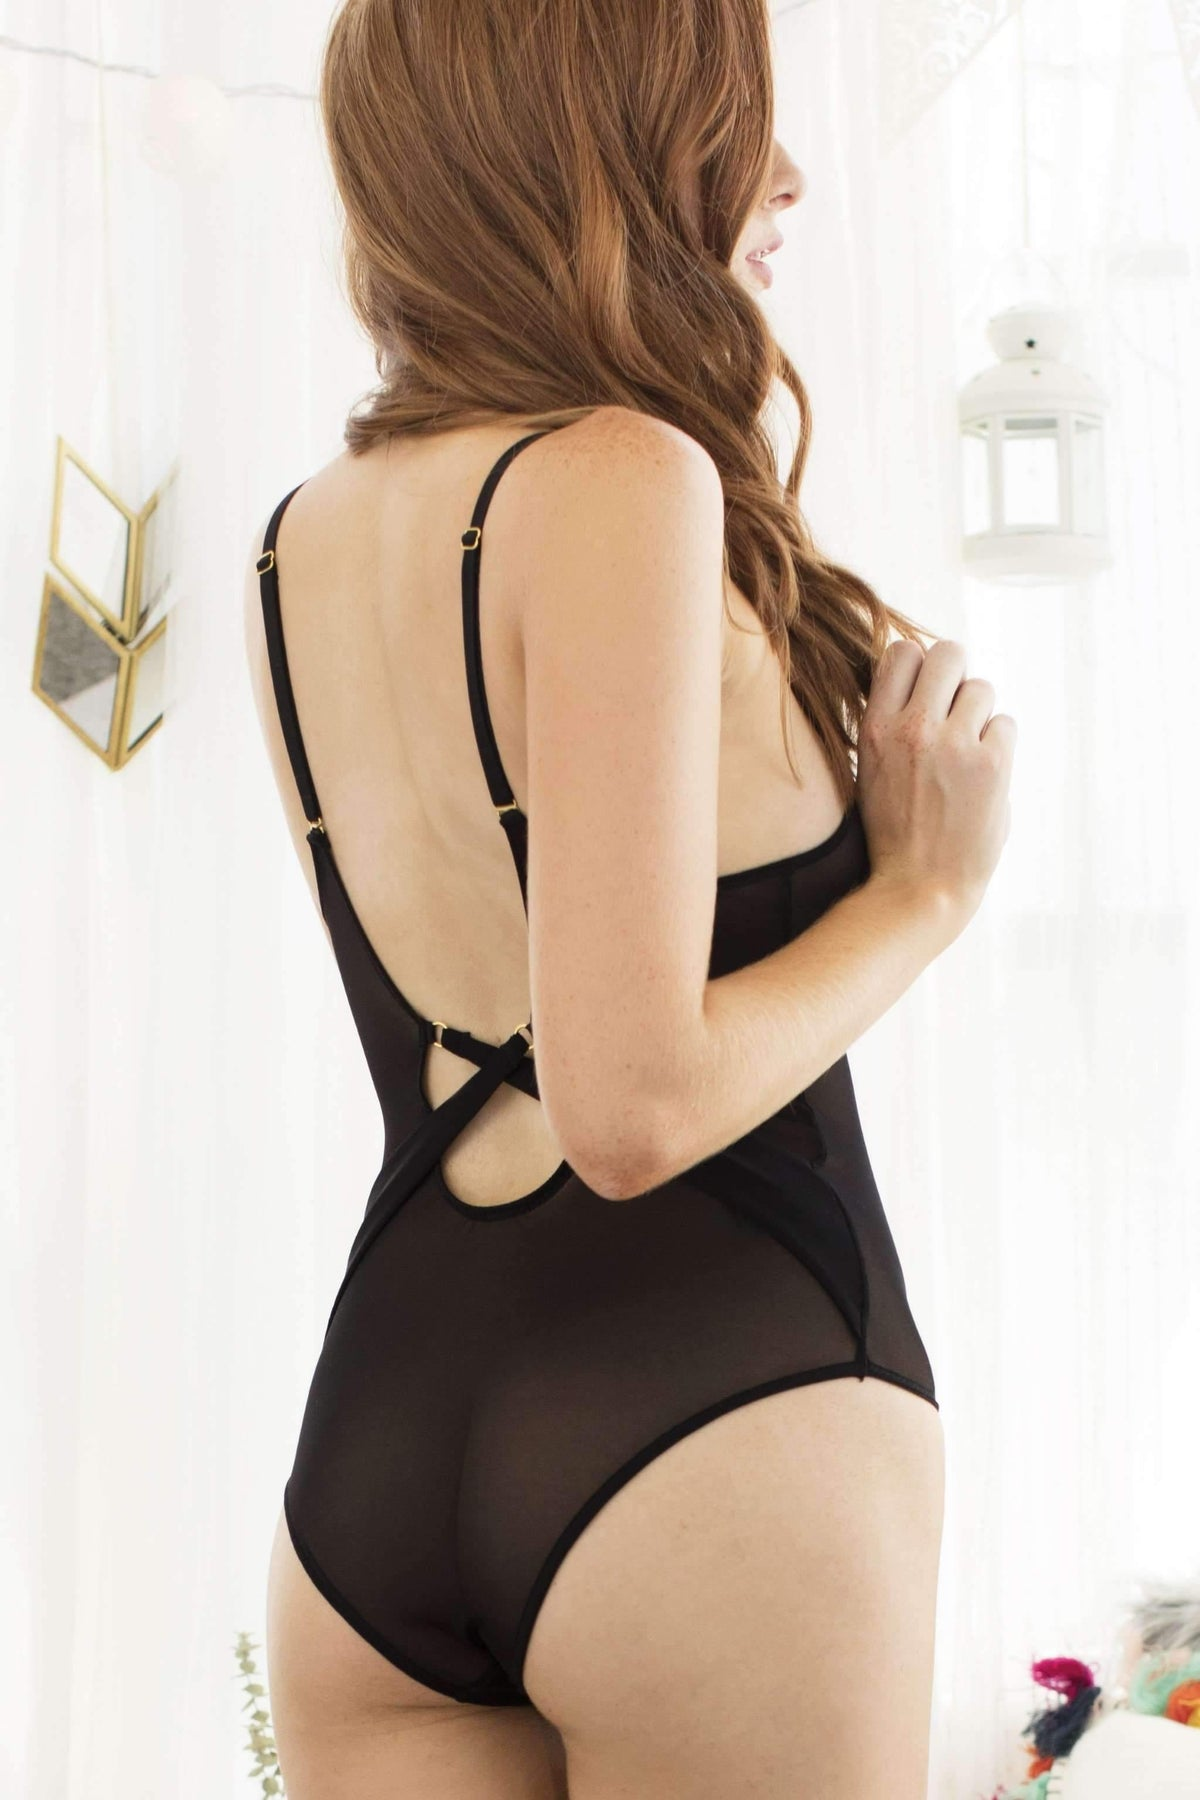 Honeydew Intimates:Everly Mesh Bodysuit